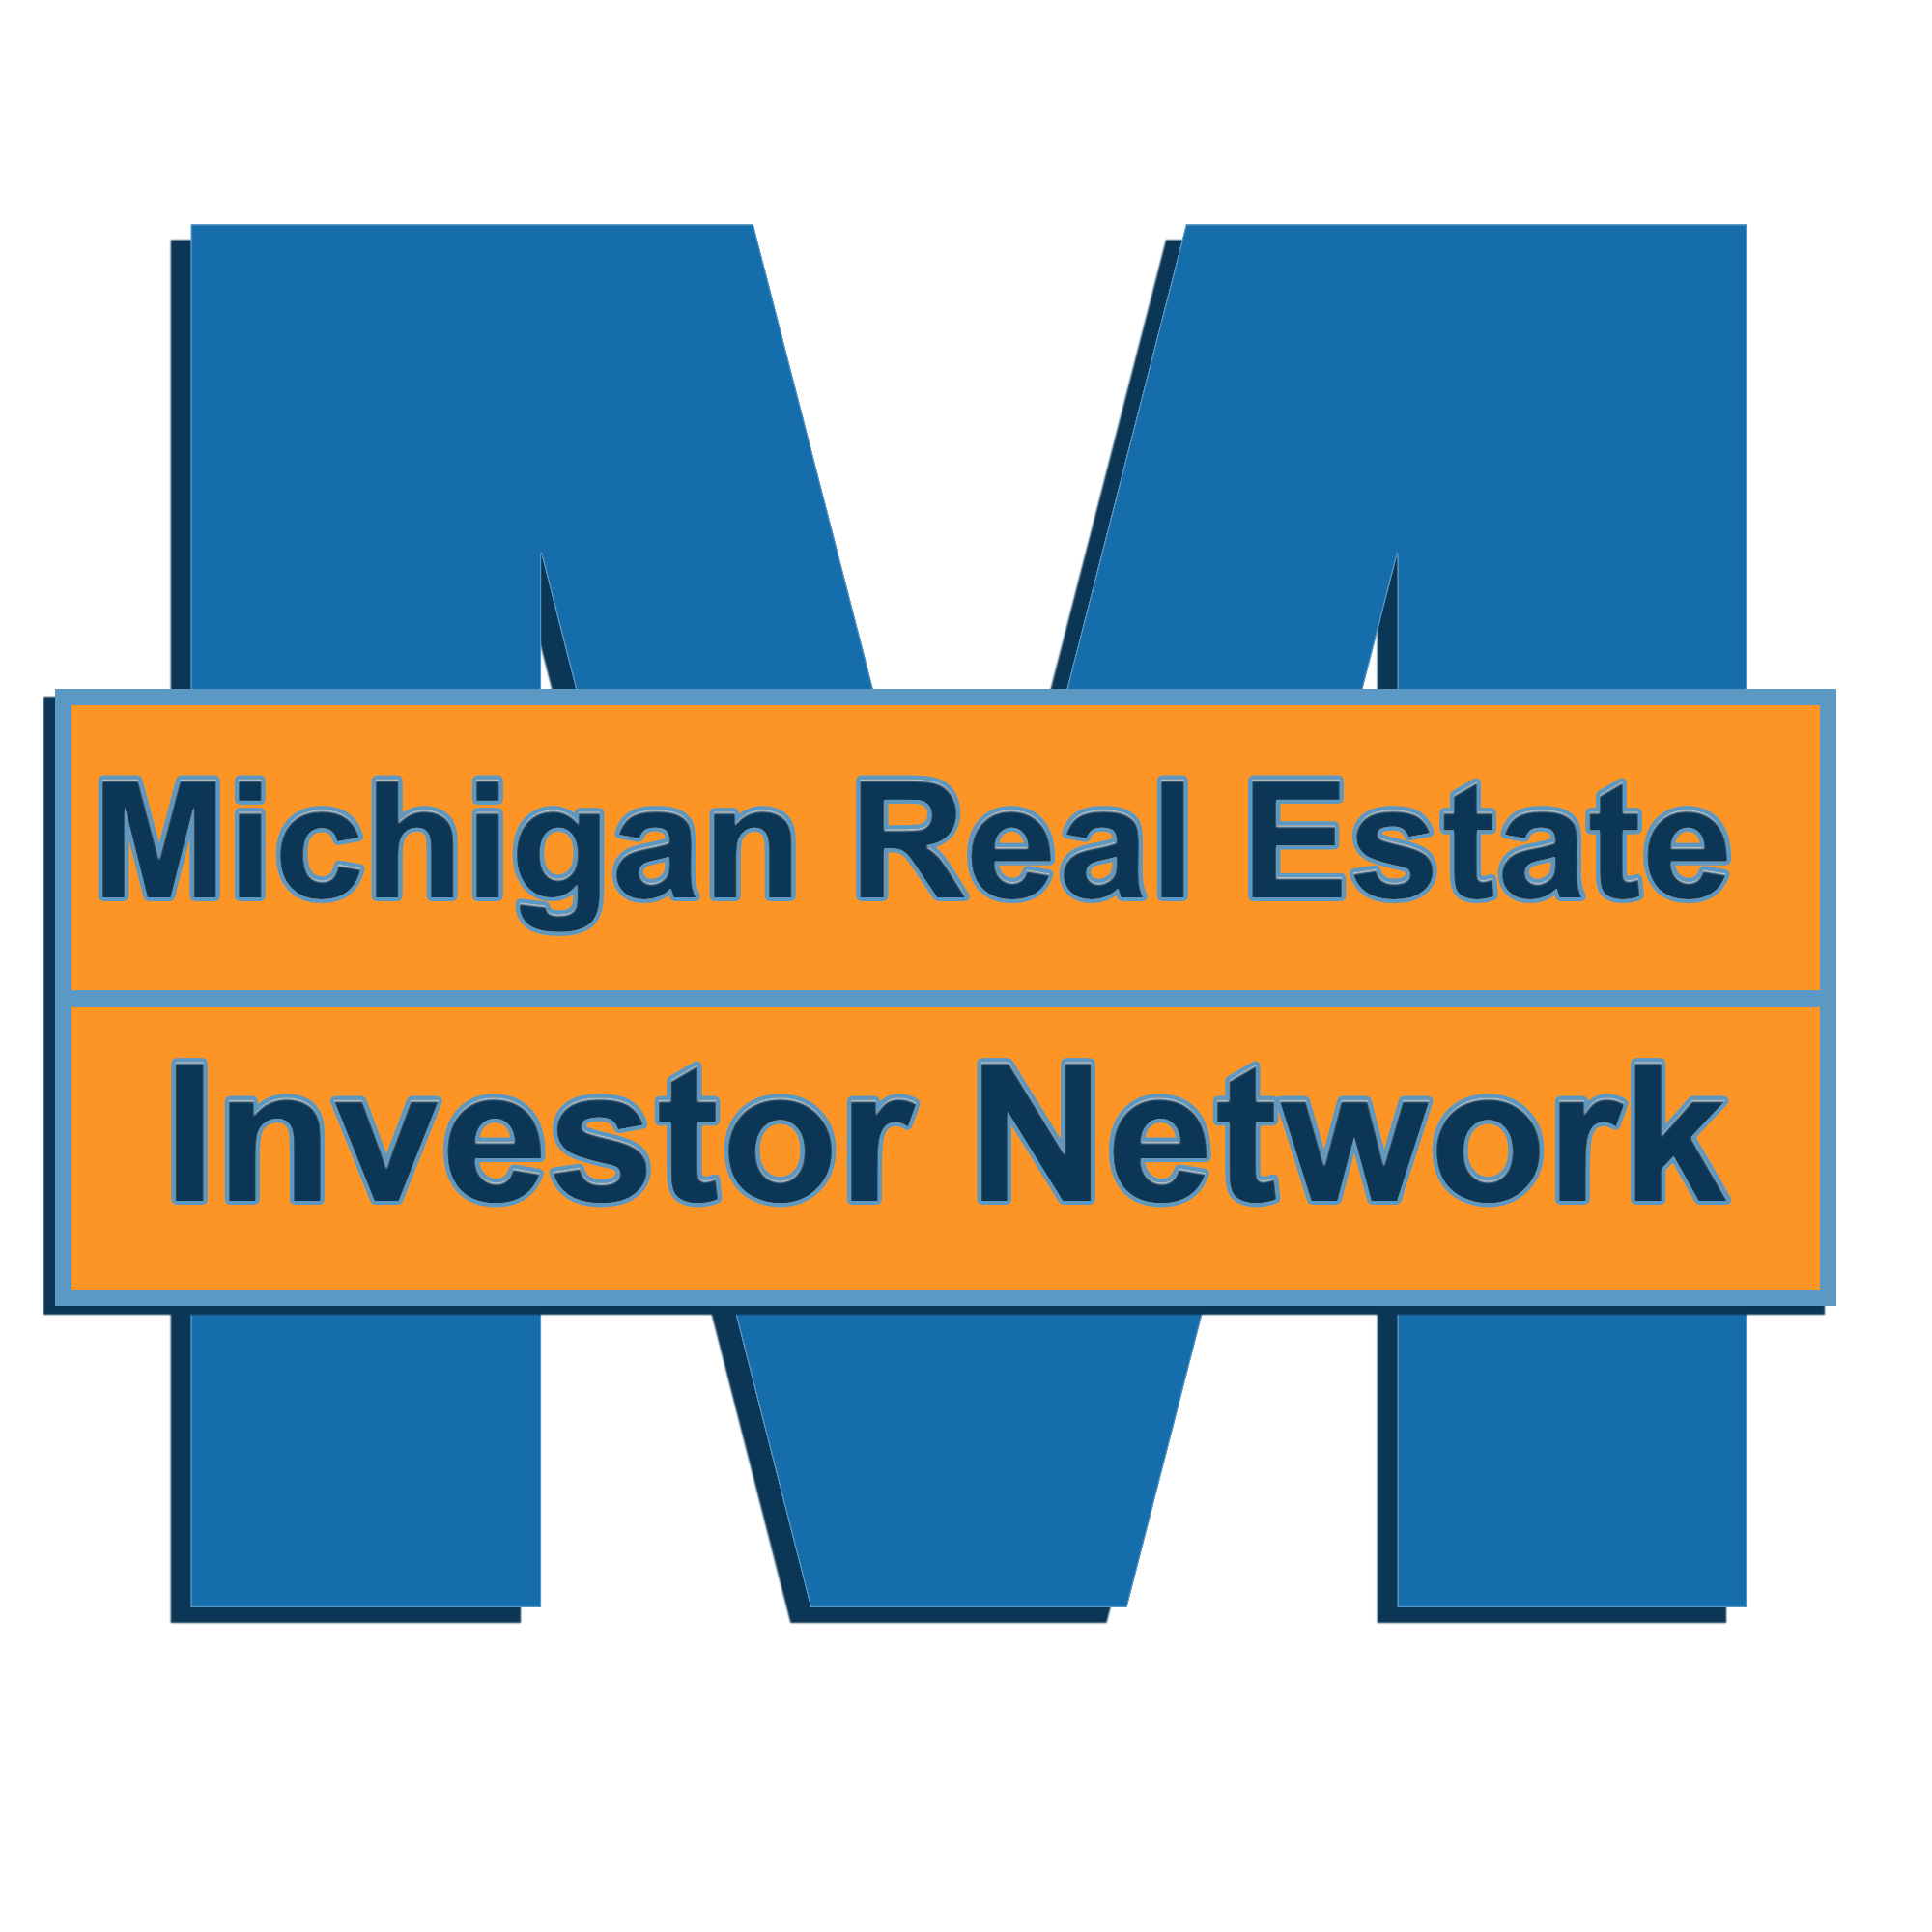 Michigan Real Estate Investor Network